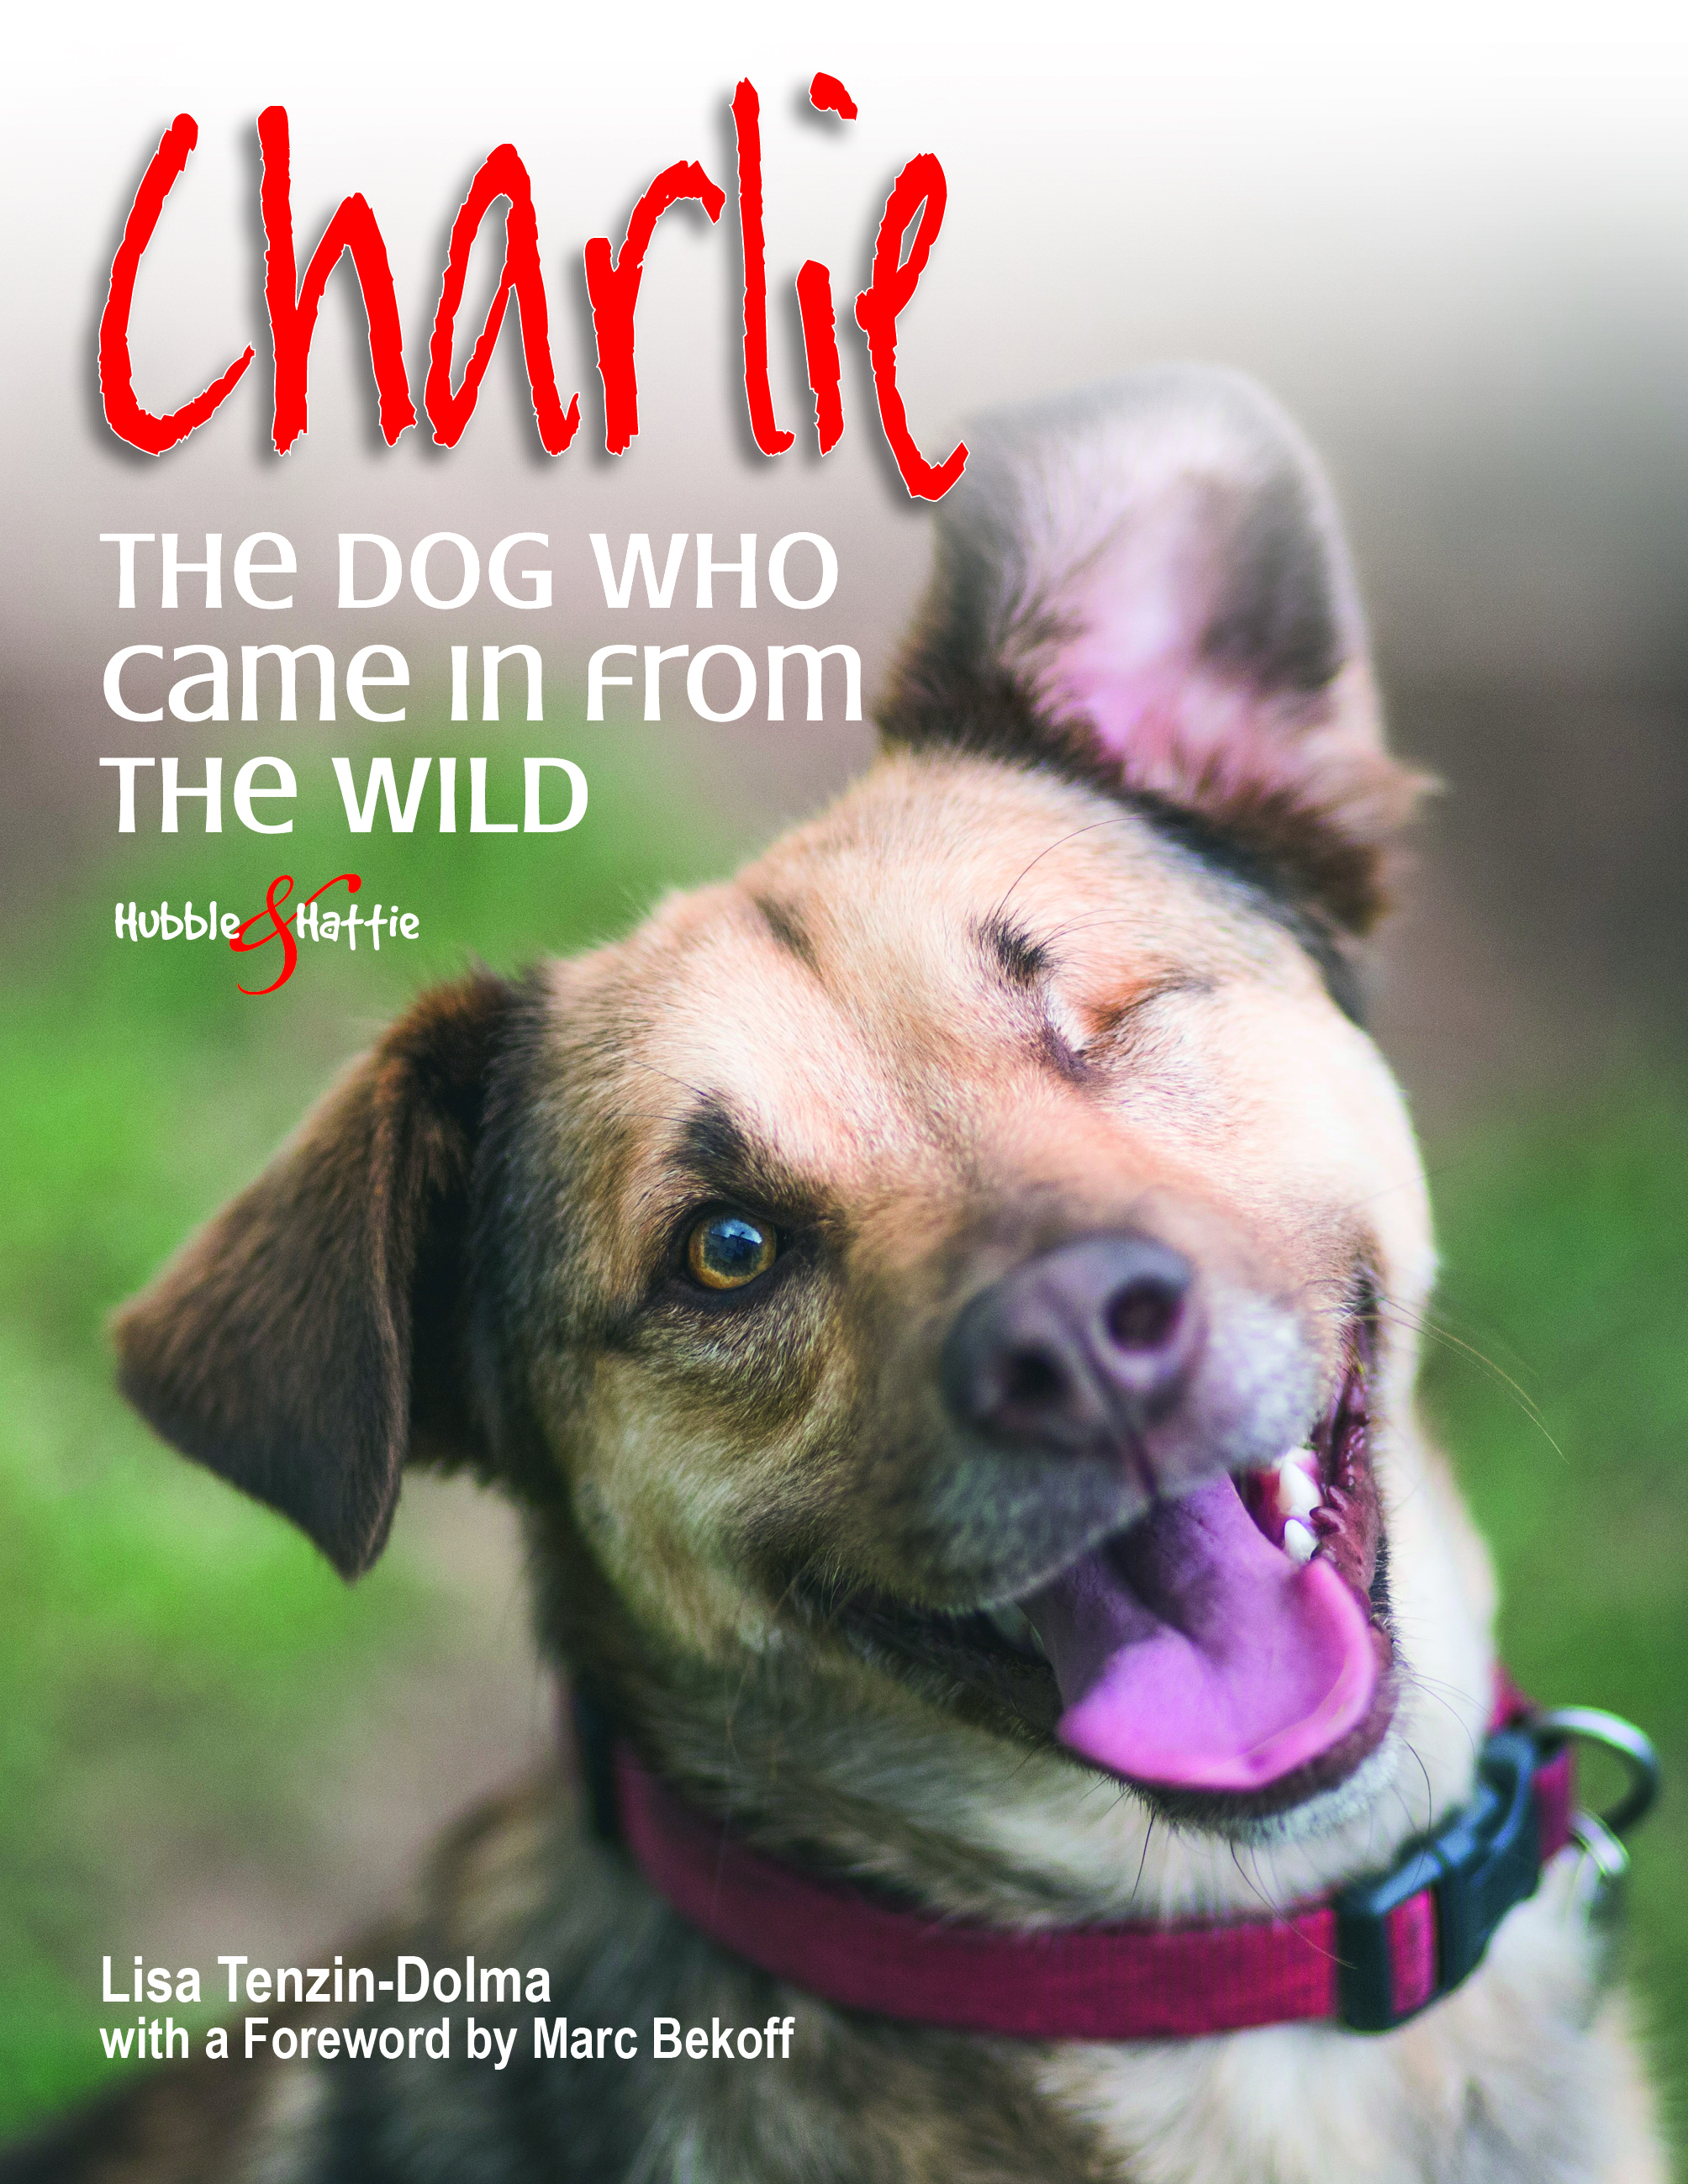 Charlie - The dog who came in from the wild